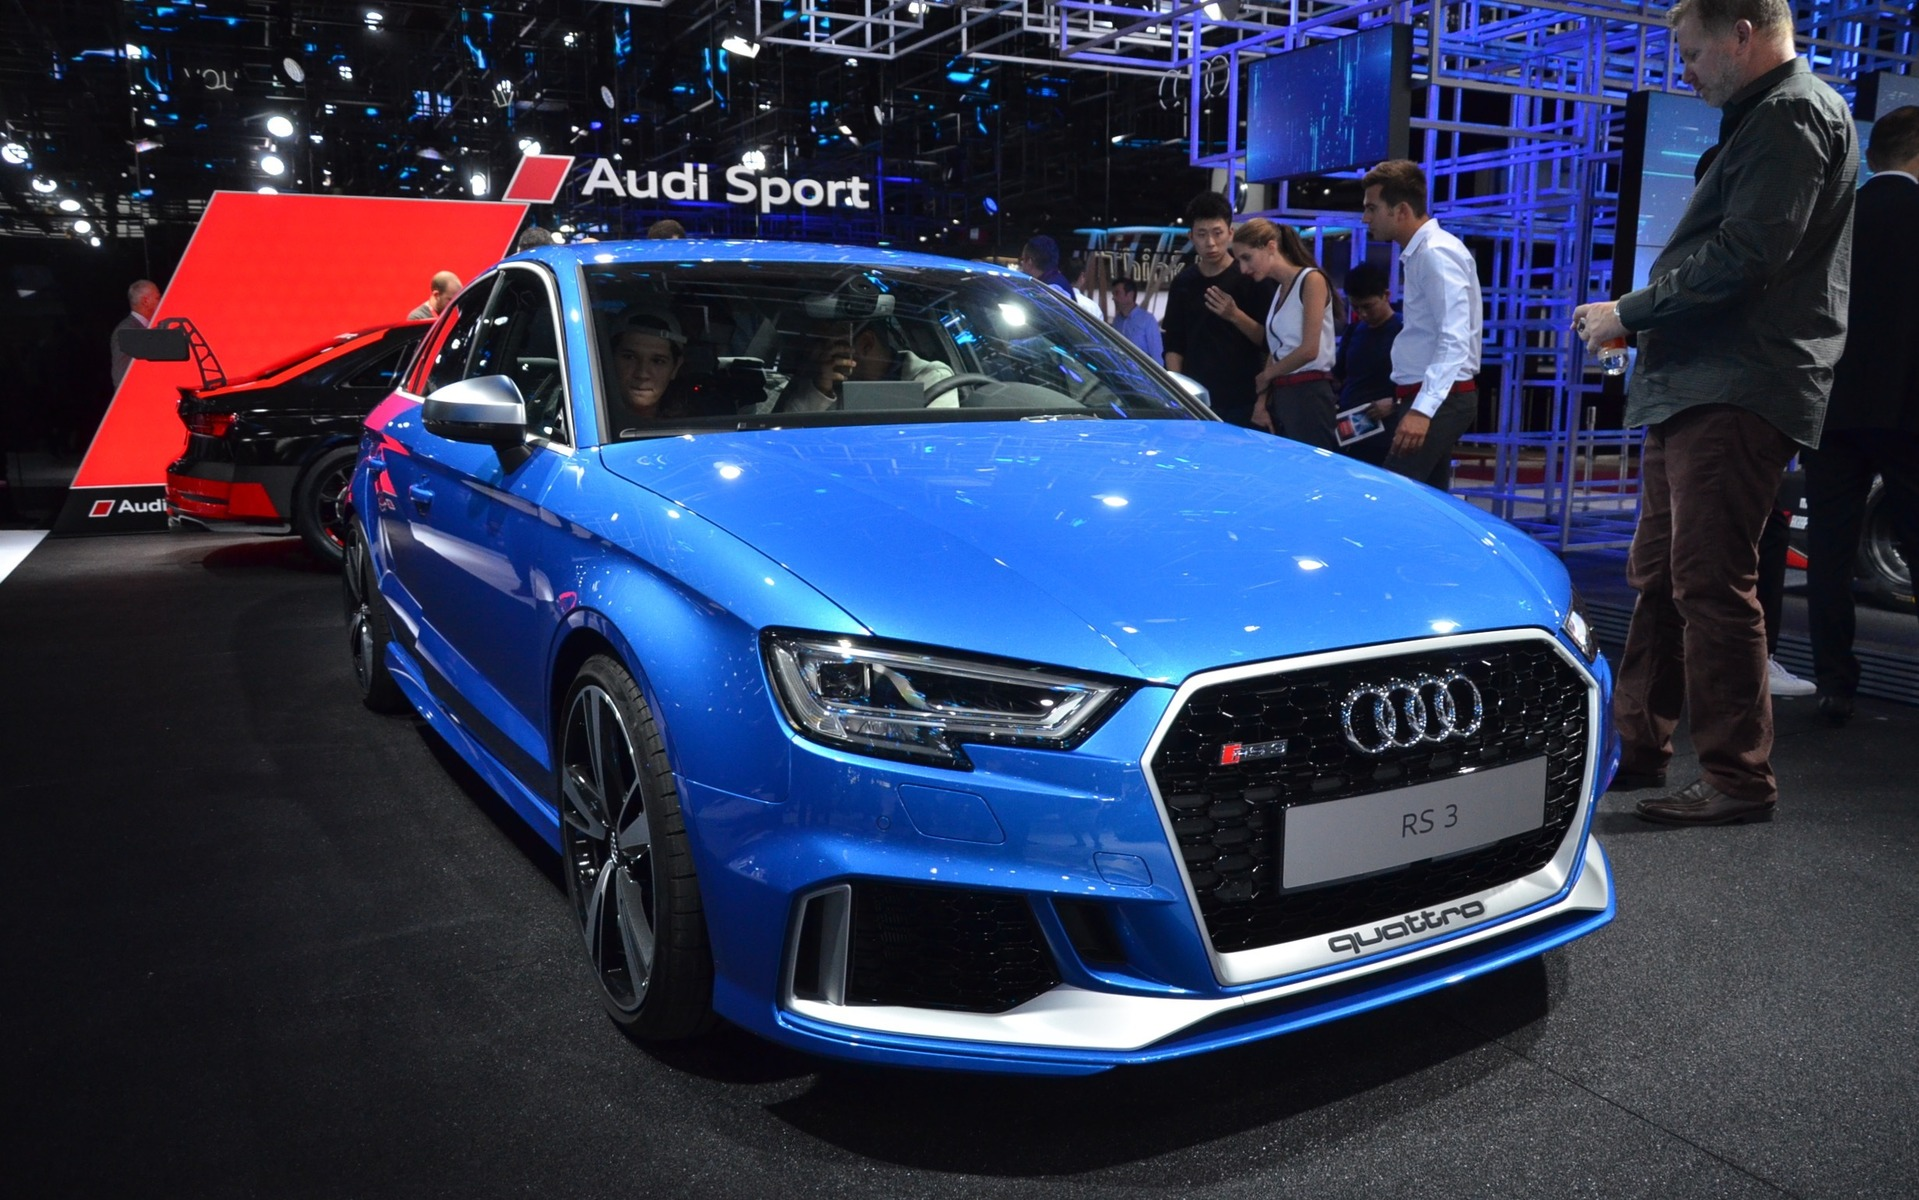 Audi Rs 3 Coming To Canada In Summer 2017 2 9